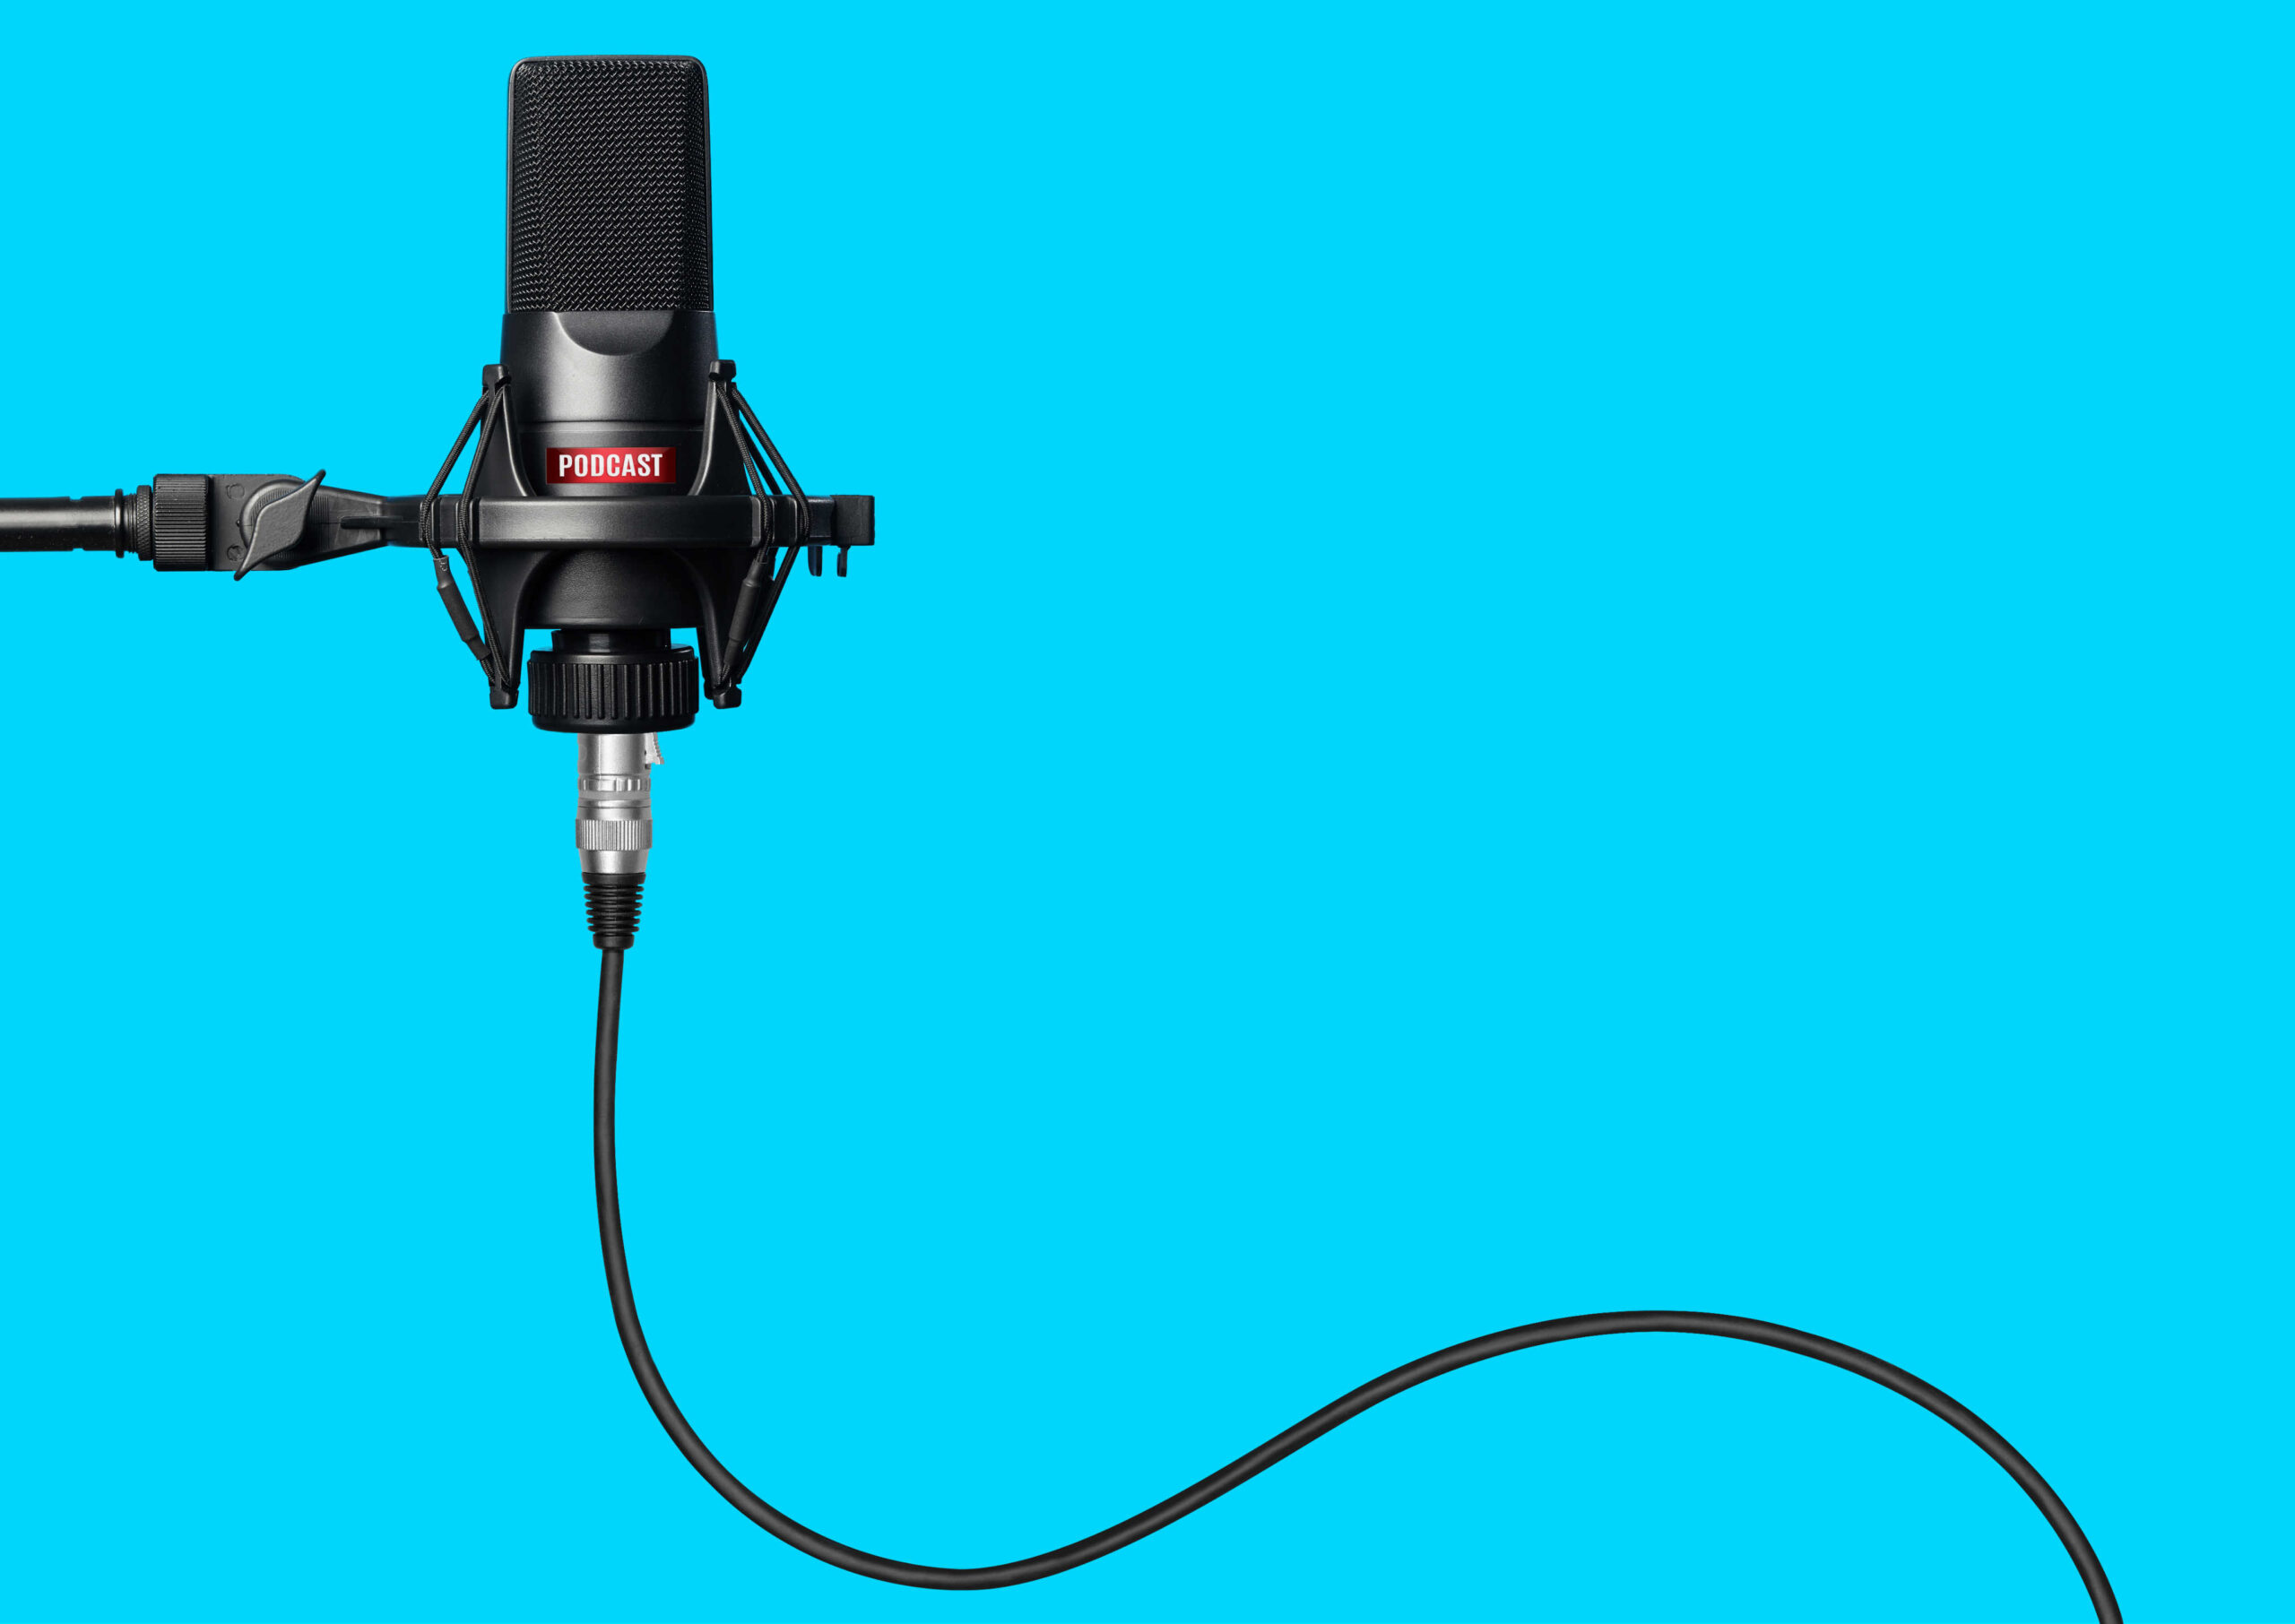 Podcast mic and blue background IBLP